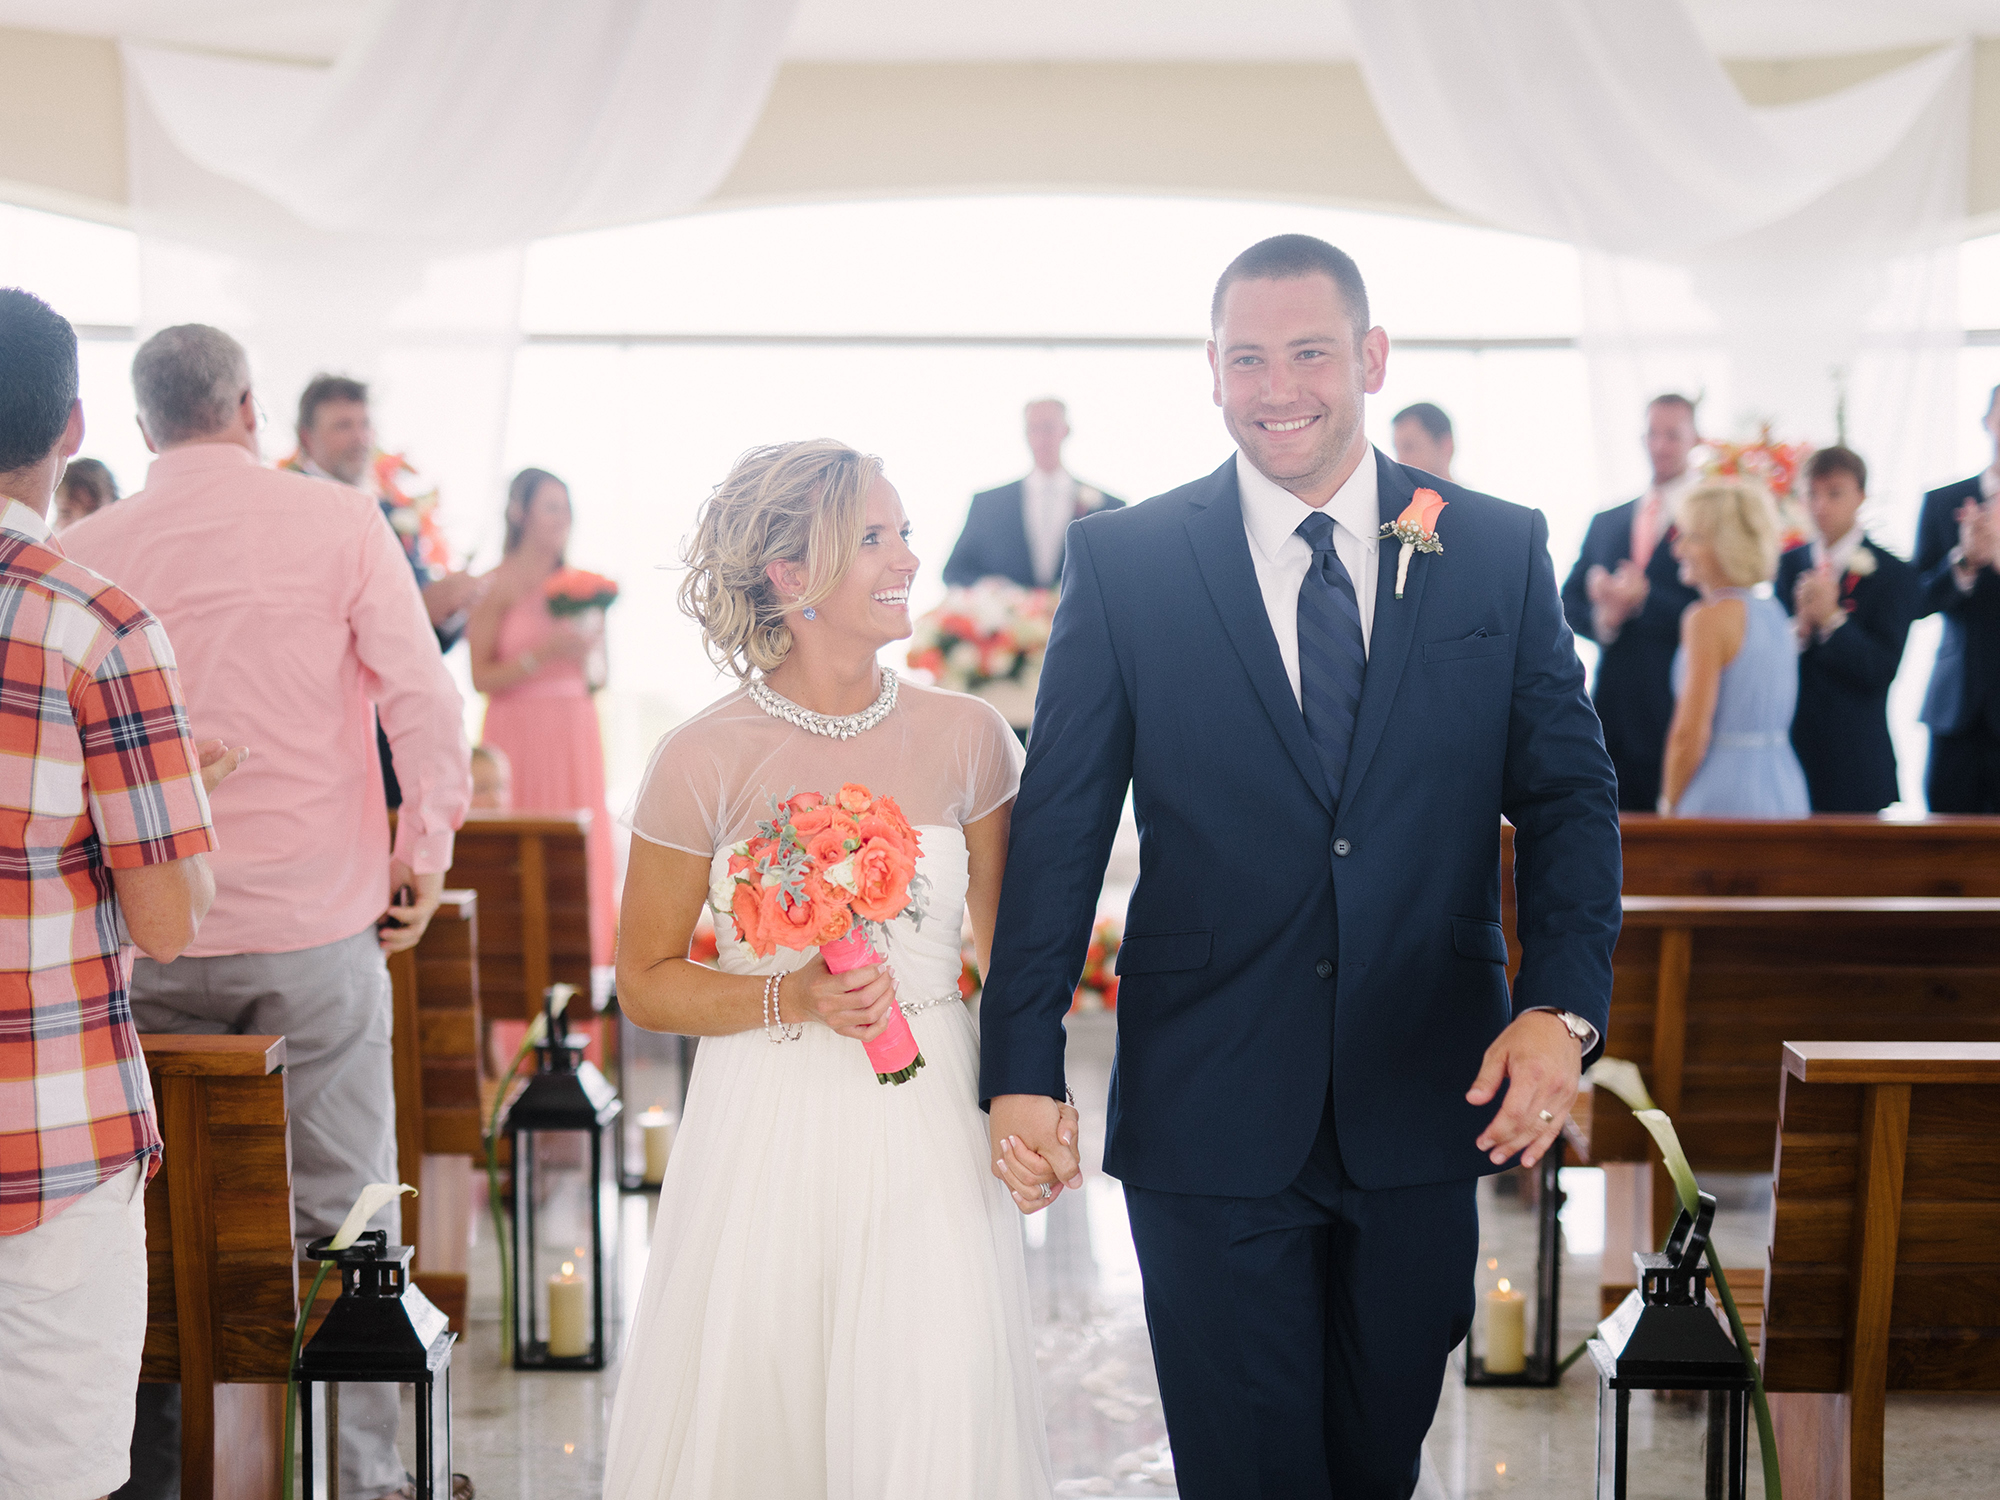 Andrew Shireman & Jaimee King's Wedding Photographs